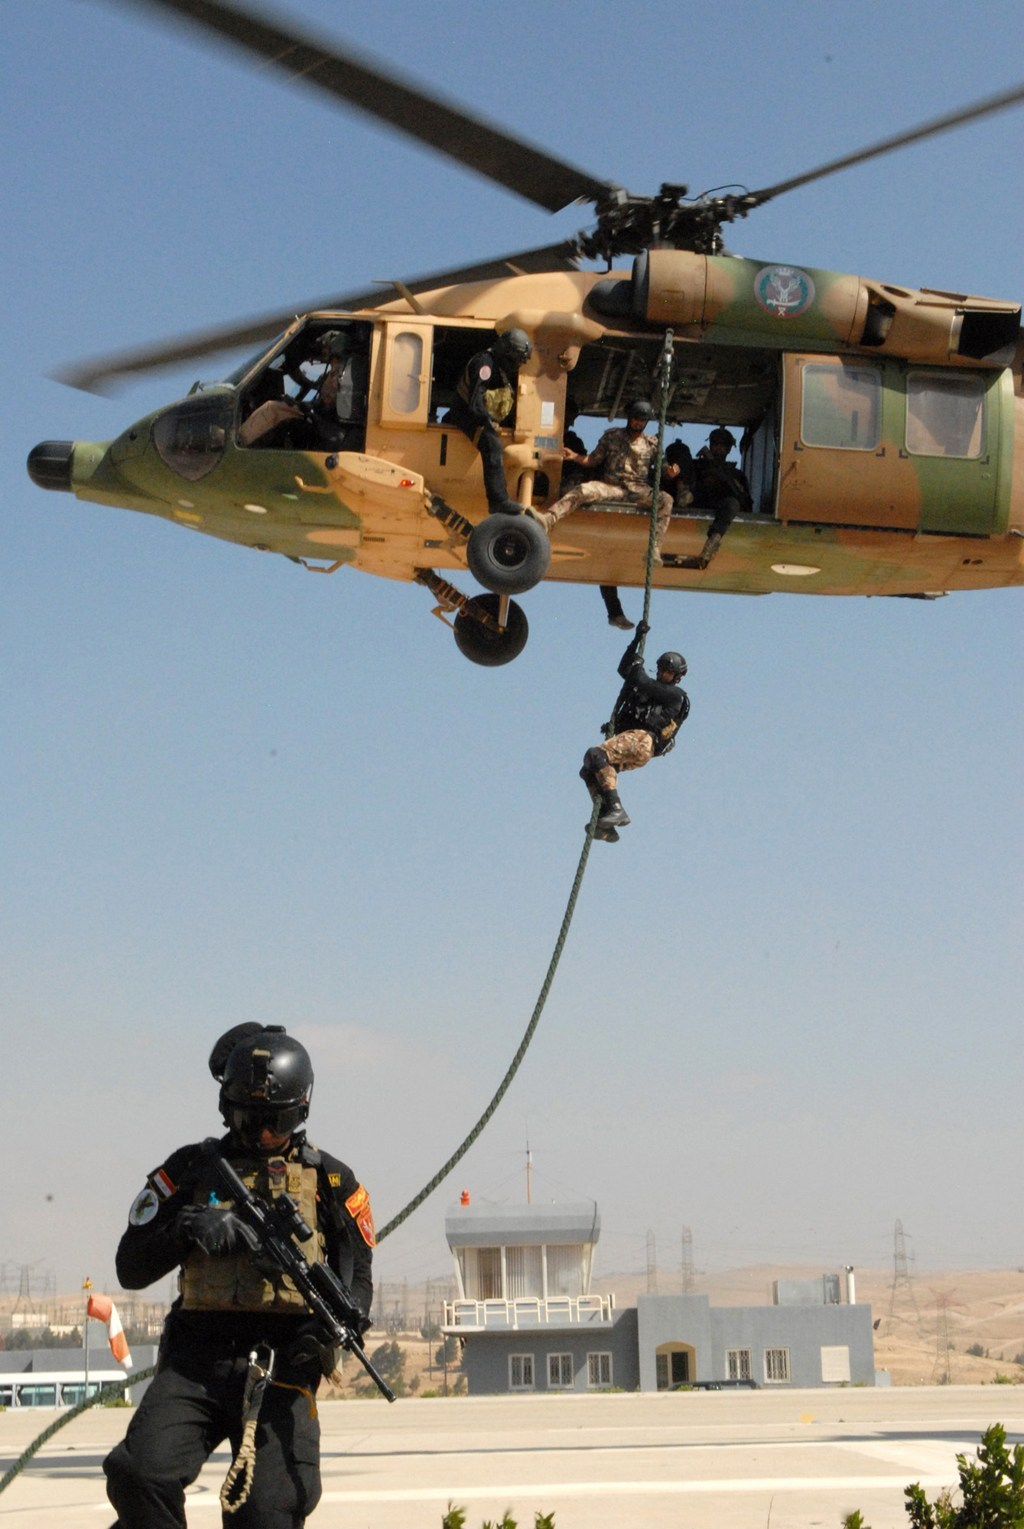 A member of the Jordanian SOF descends from a Jordanian UH-60 Black Hawk helicopter at the Jordanian SOF compound near Zarqa, Jordan, June 13, 2013. Jordan is one of the major Foreign Military Financing recipients. (SSG Scott Griffin/U.S. Army Photo)